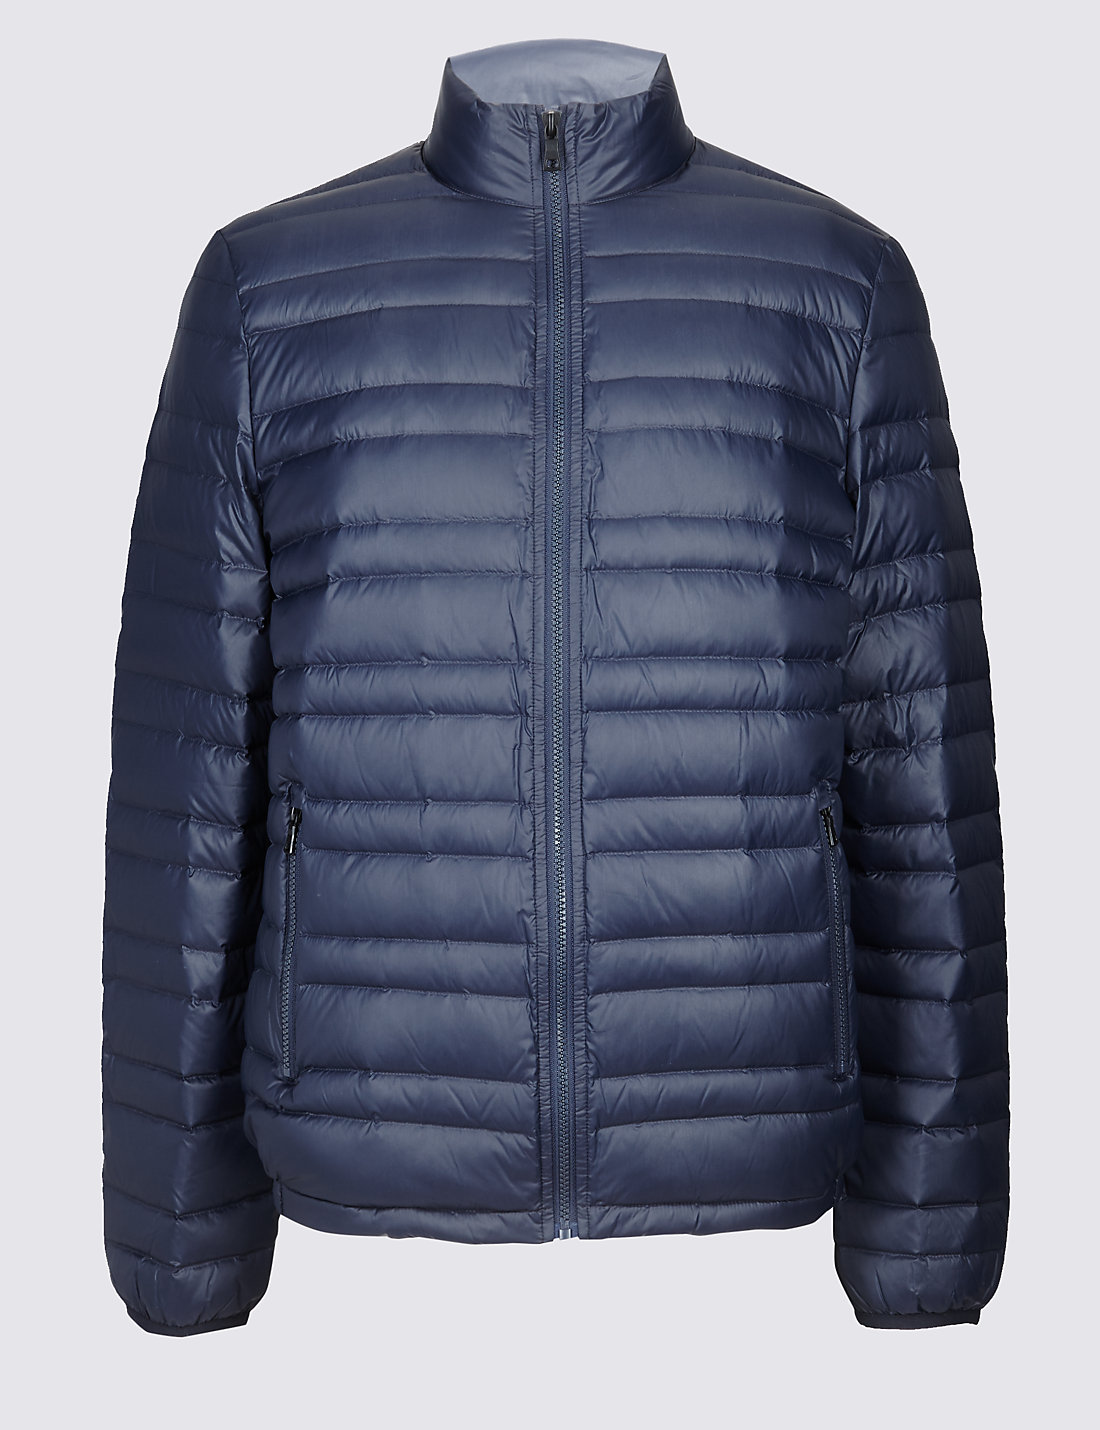 Men's Down & Feather Jacket with Stormwear, £59, Marks & Spencer